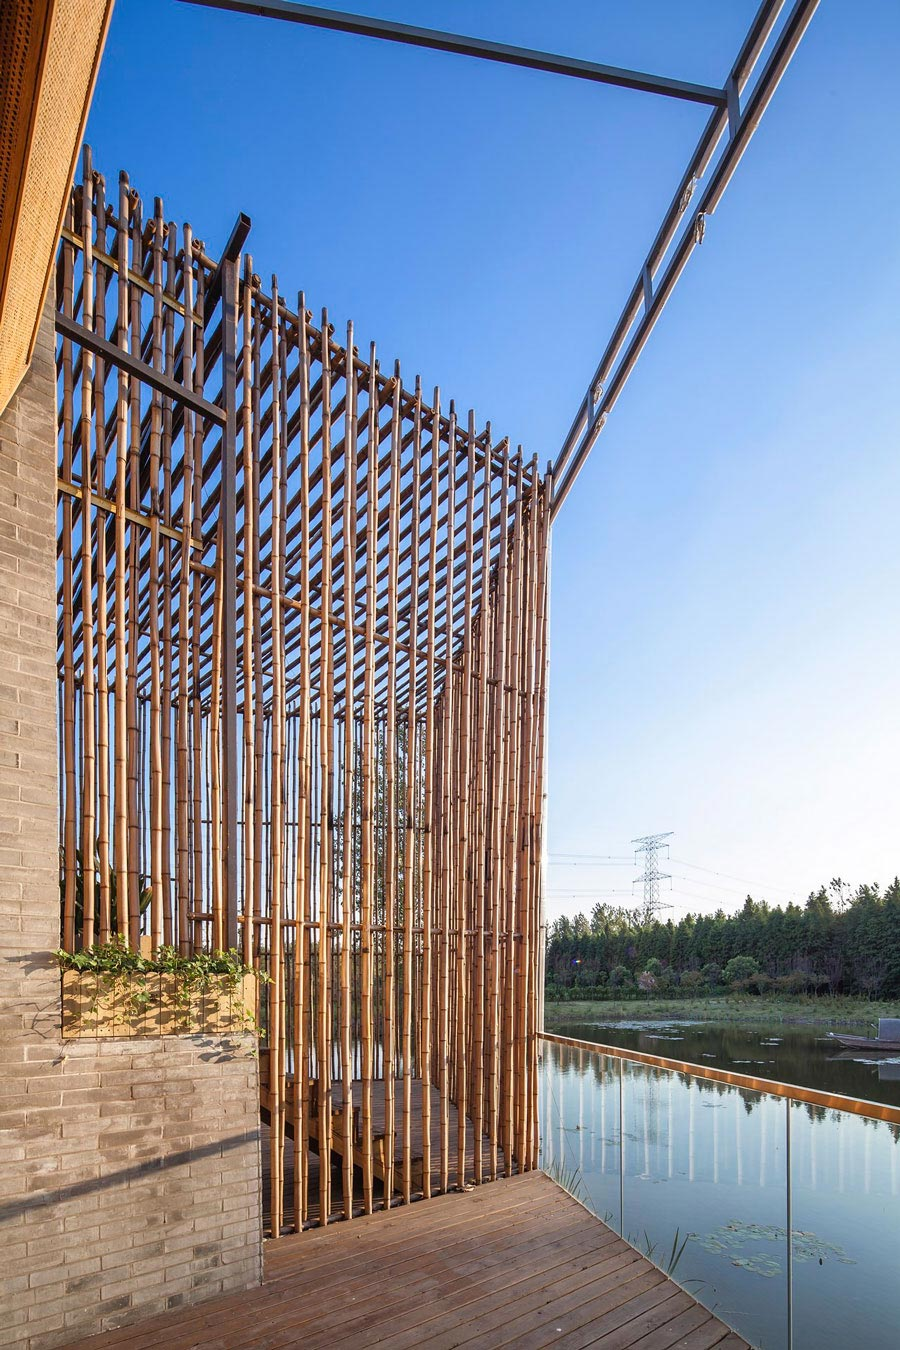 Glass Balustrading, Lake View, Floating Bamboo Courtyard Teahouse in ShiQiao, China